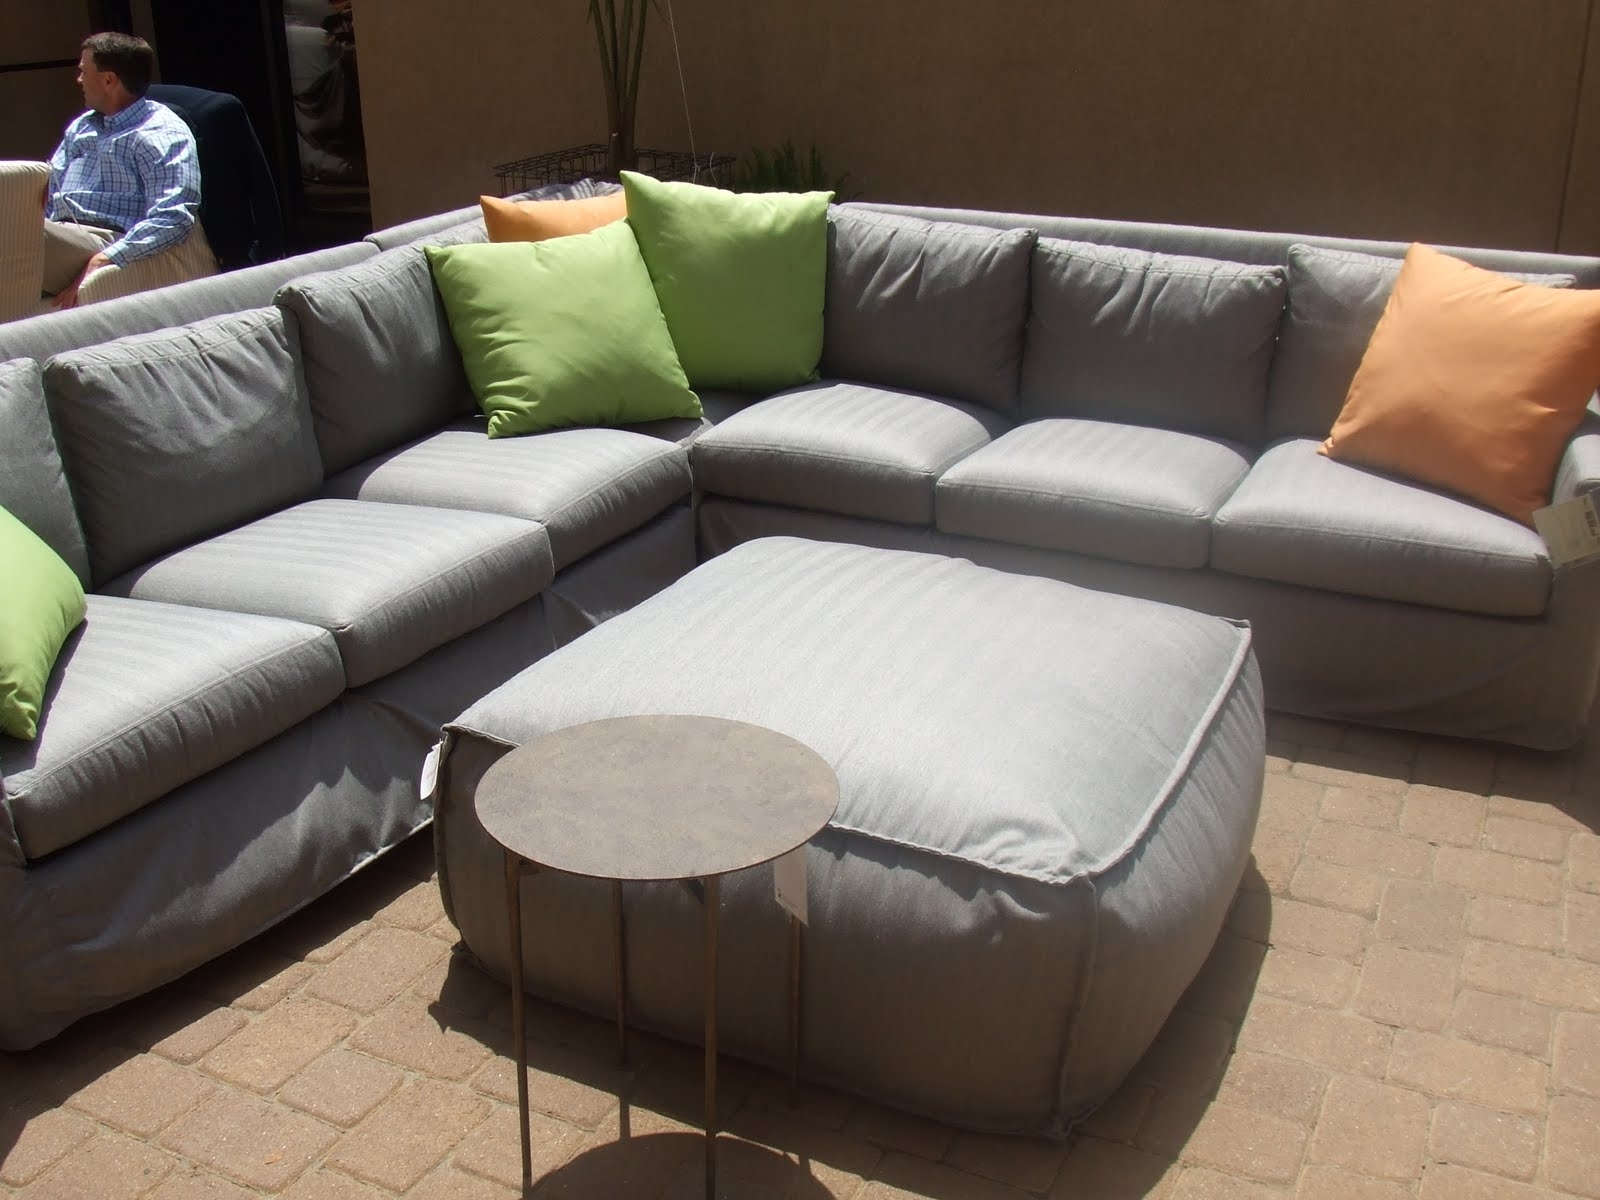 Gardiners Sectional Sofas pertaining to Well-known Furniture: Gardiners Furniture For Inspiring Interior Furniture